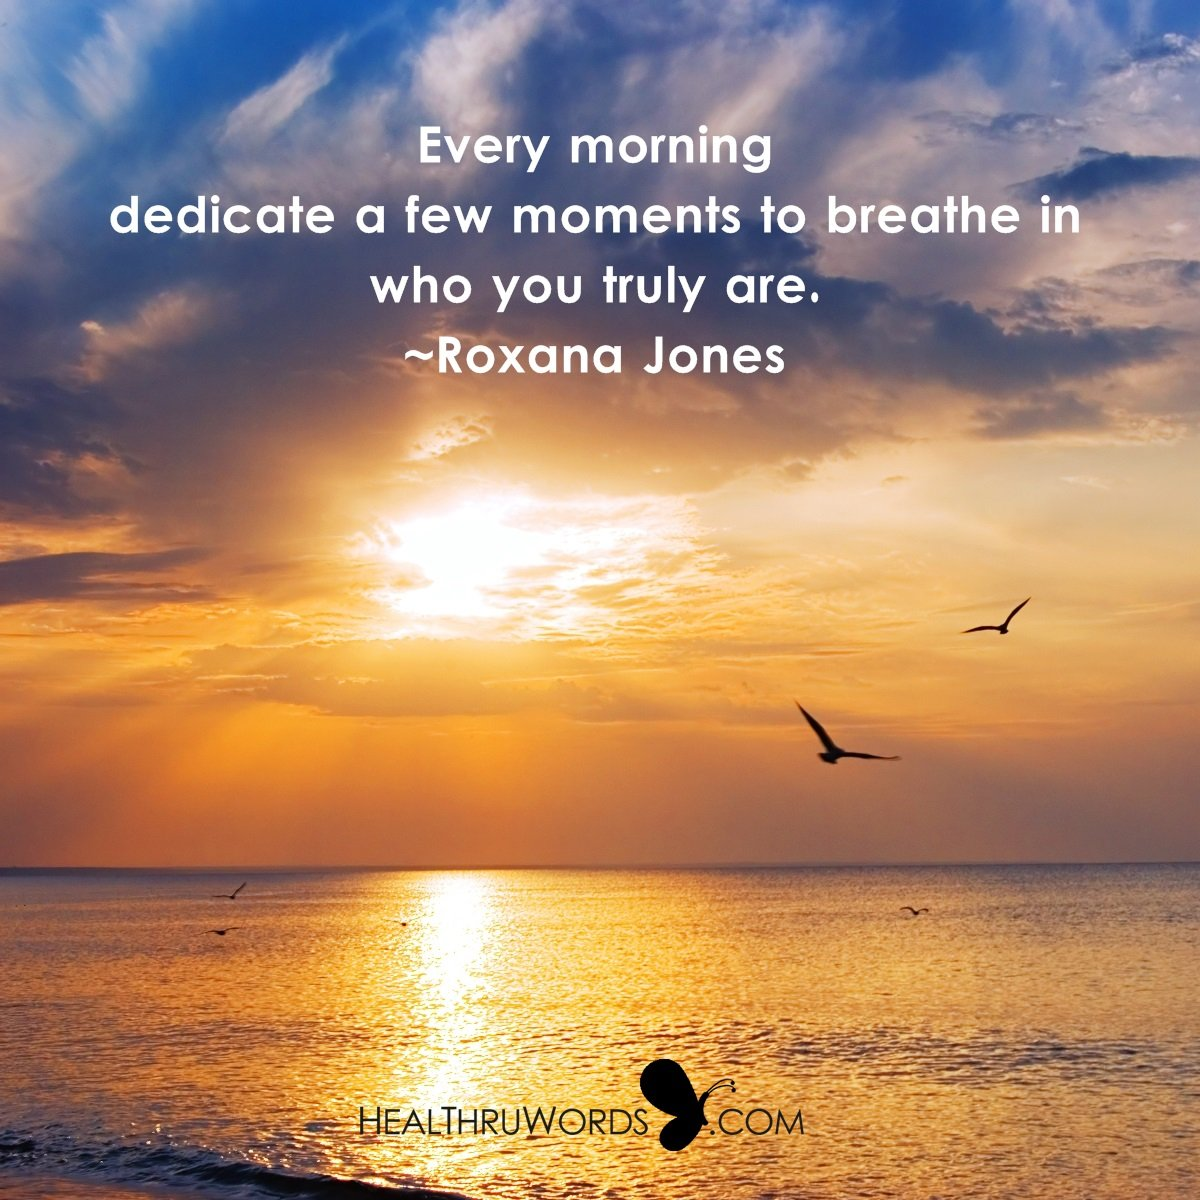 Inspirational Image: Breathing The Self